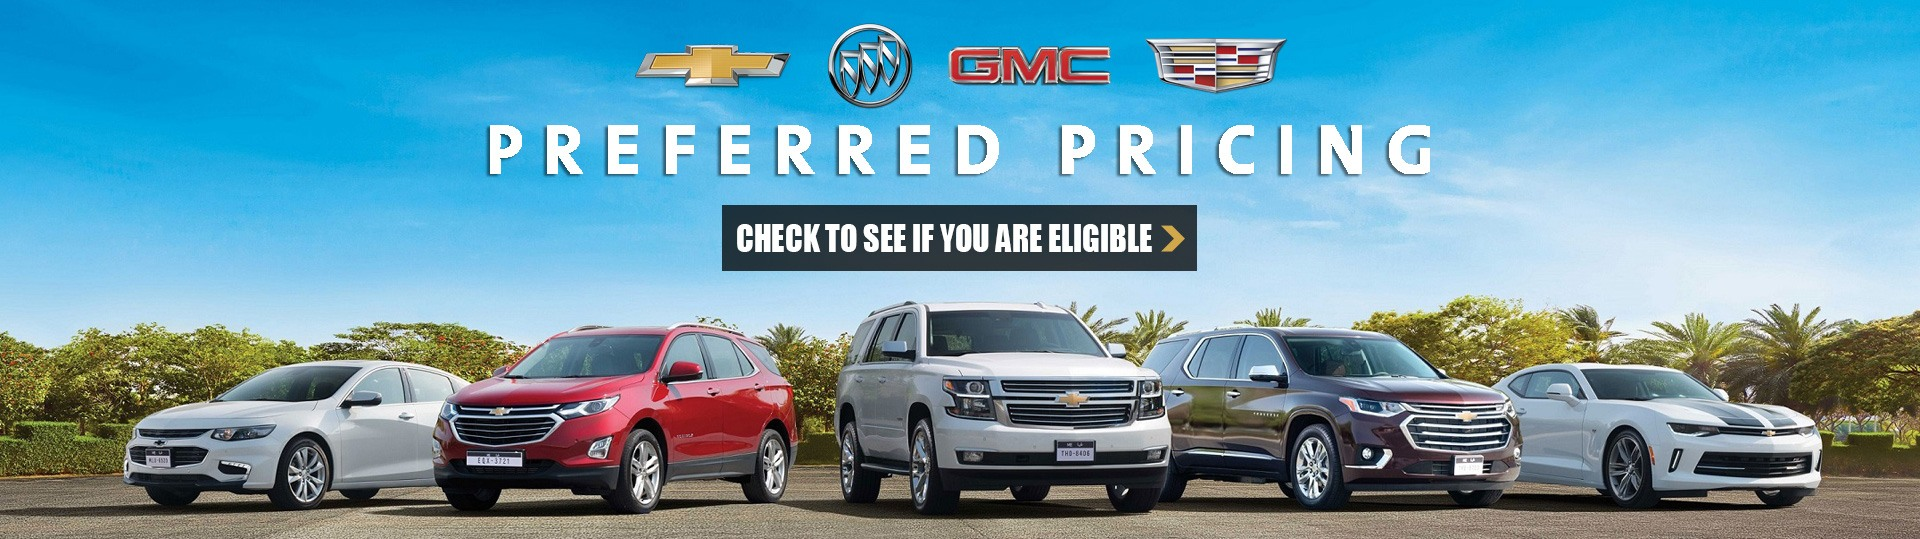 Check to see if you are eligible for GM Preferred Pricing from Georgetown Chevrolet Buick GMC